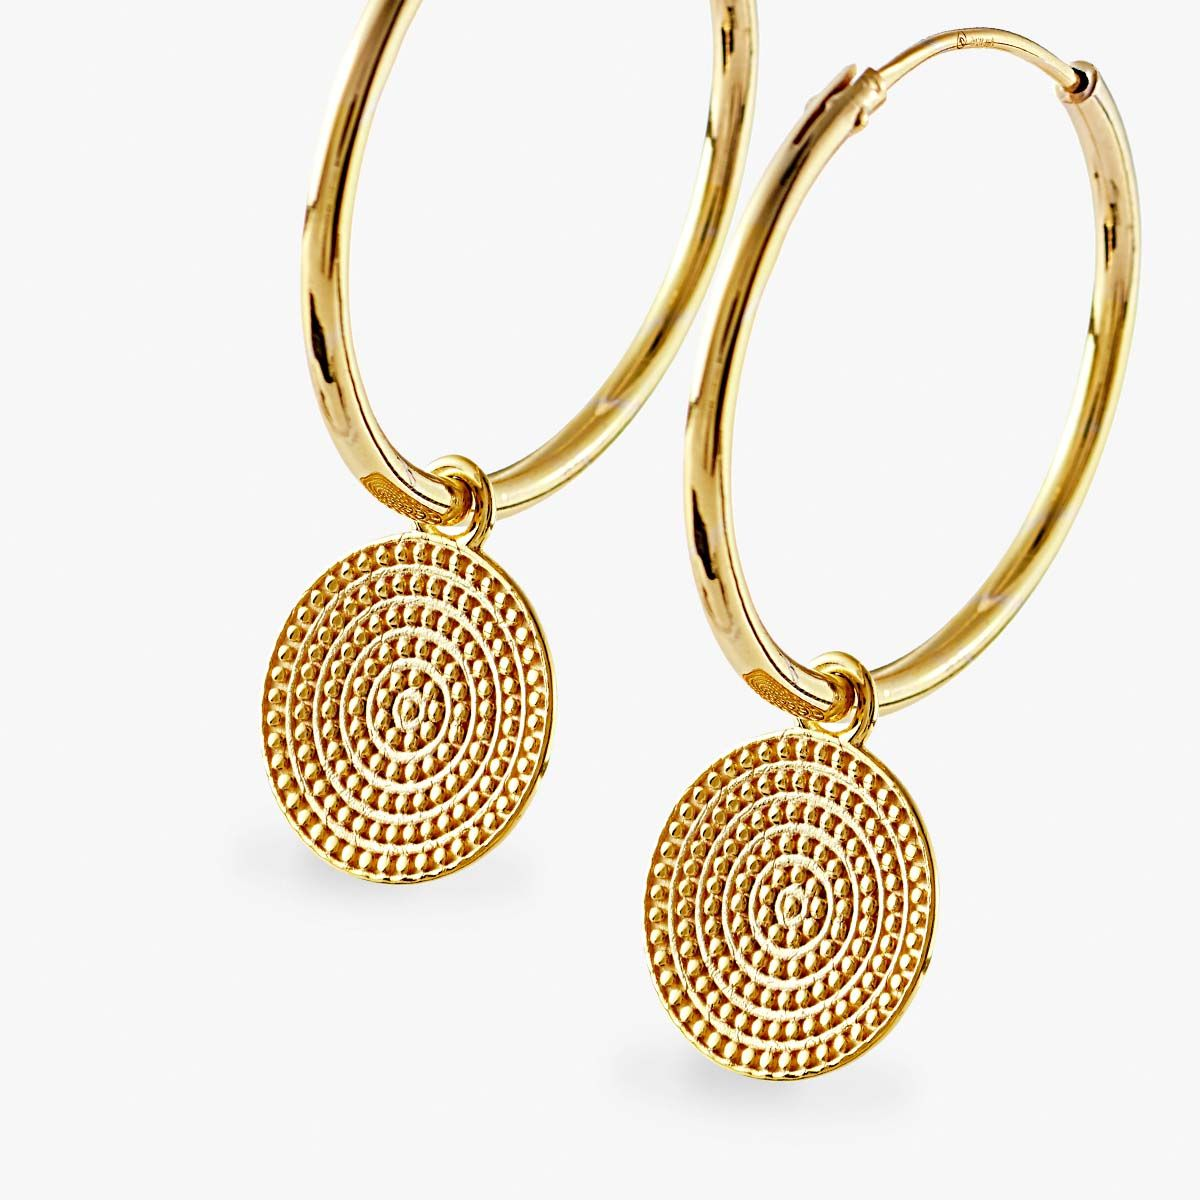 Coin earrings - Creolen - Gold